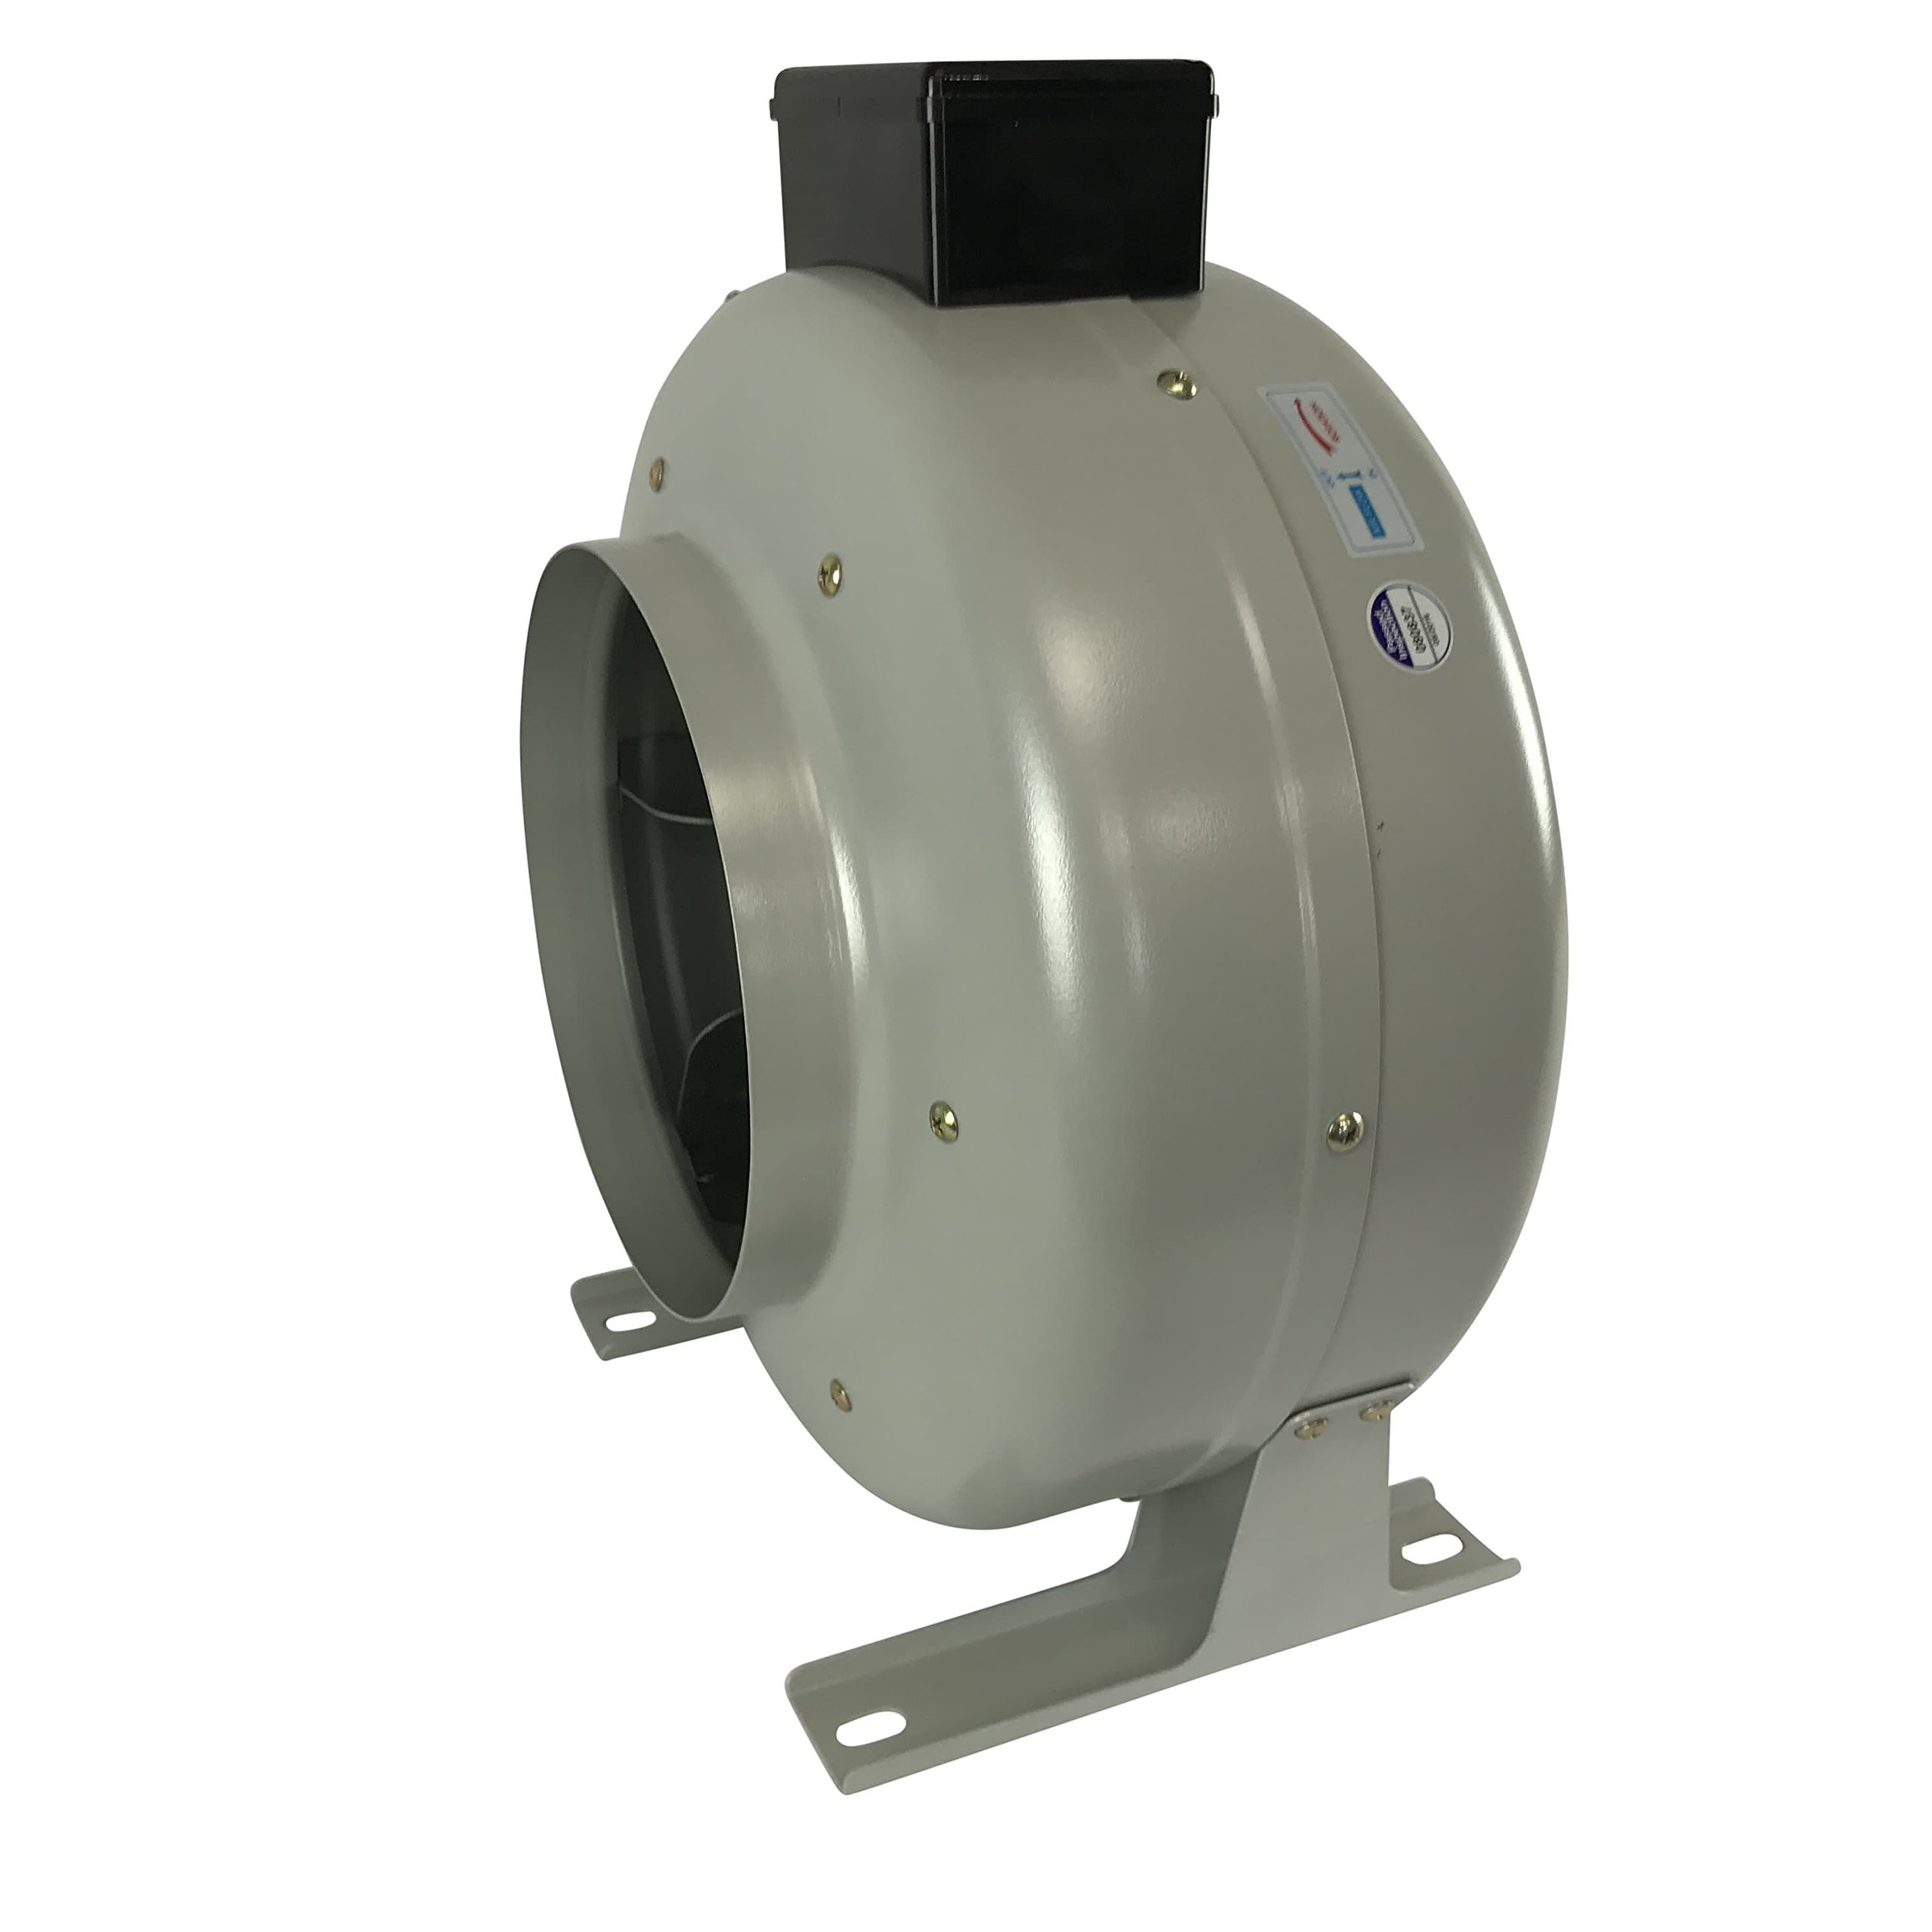 AmeriFan AIF8 Duct Booster Exhaust Fan, 720 CFM, 8'', for Growing, Hydroponics, Heating, Cooling, Venting, HVAC, Steel, 120V Supply Voltage